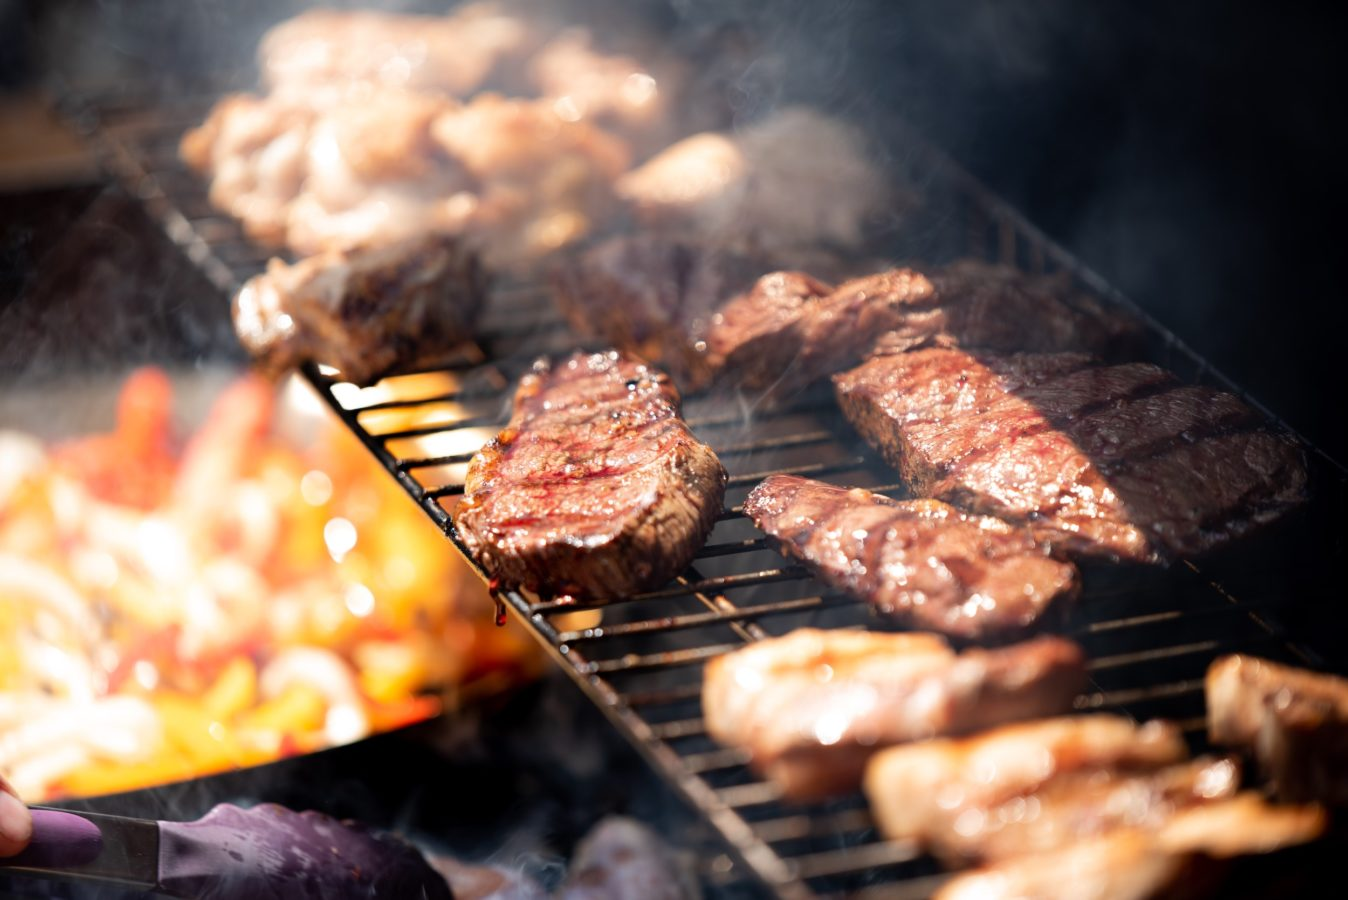 Lab-grown meat may not be the best alternative to traditional meat, says a report